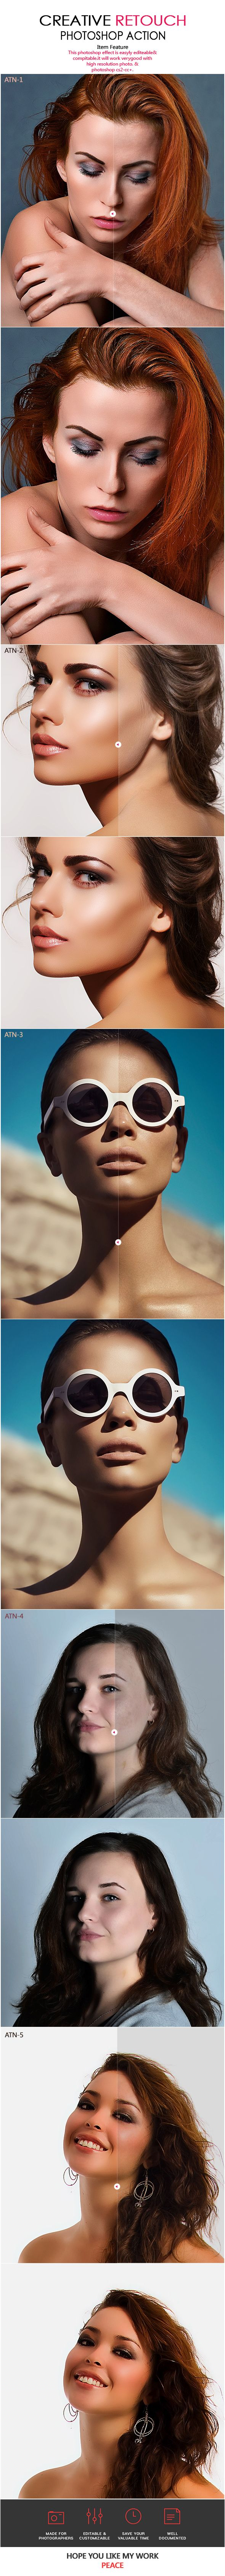 Creative Retouch Photoshop Action